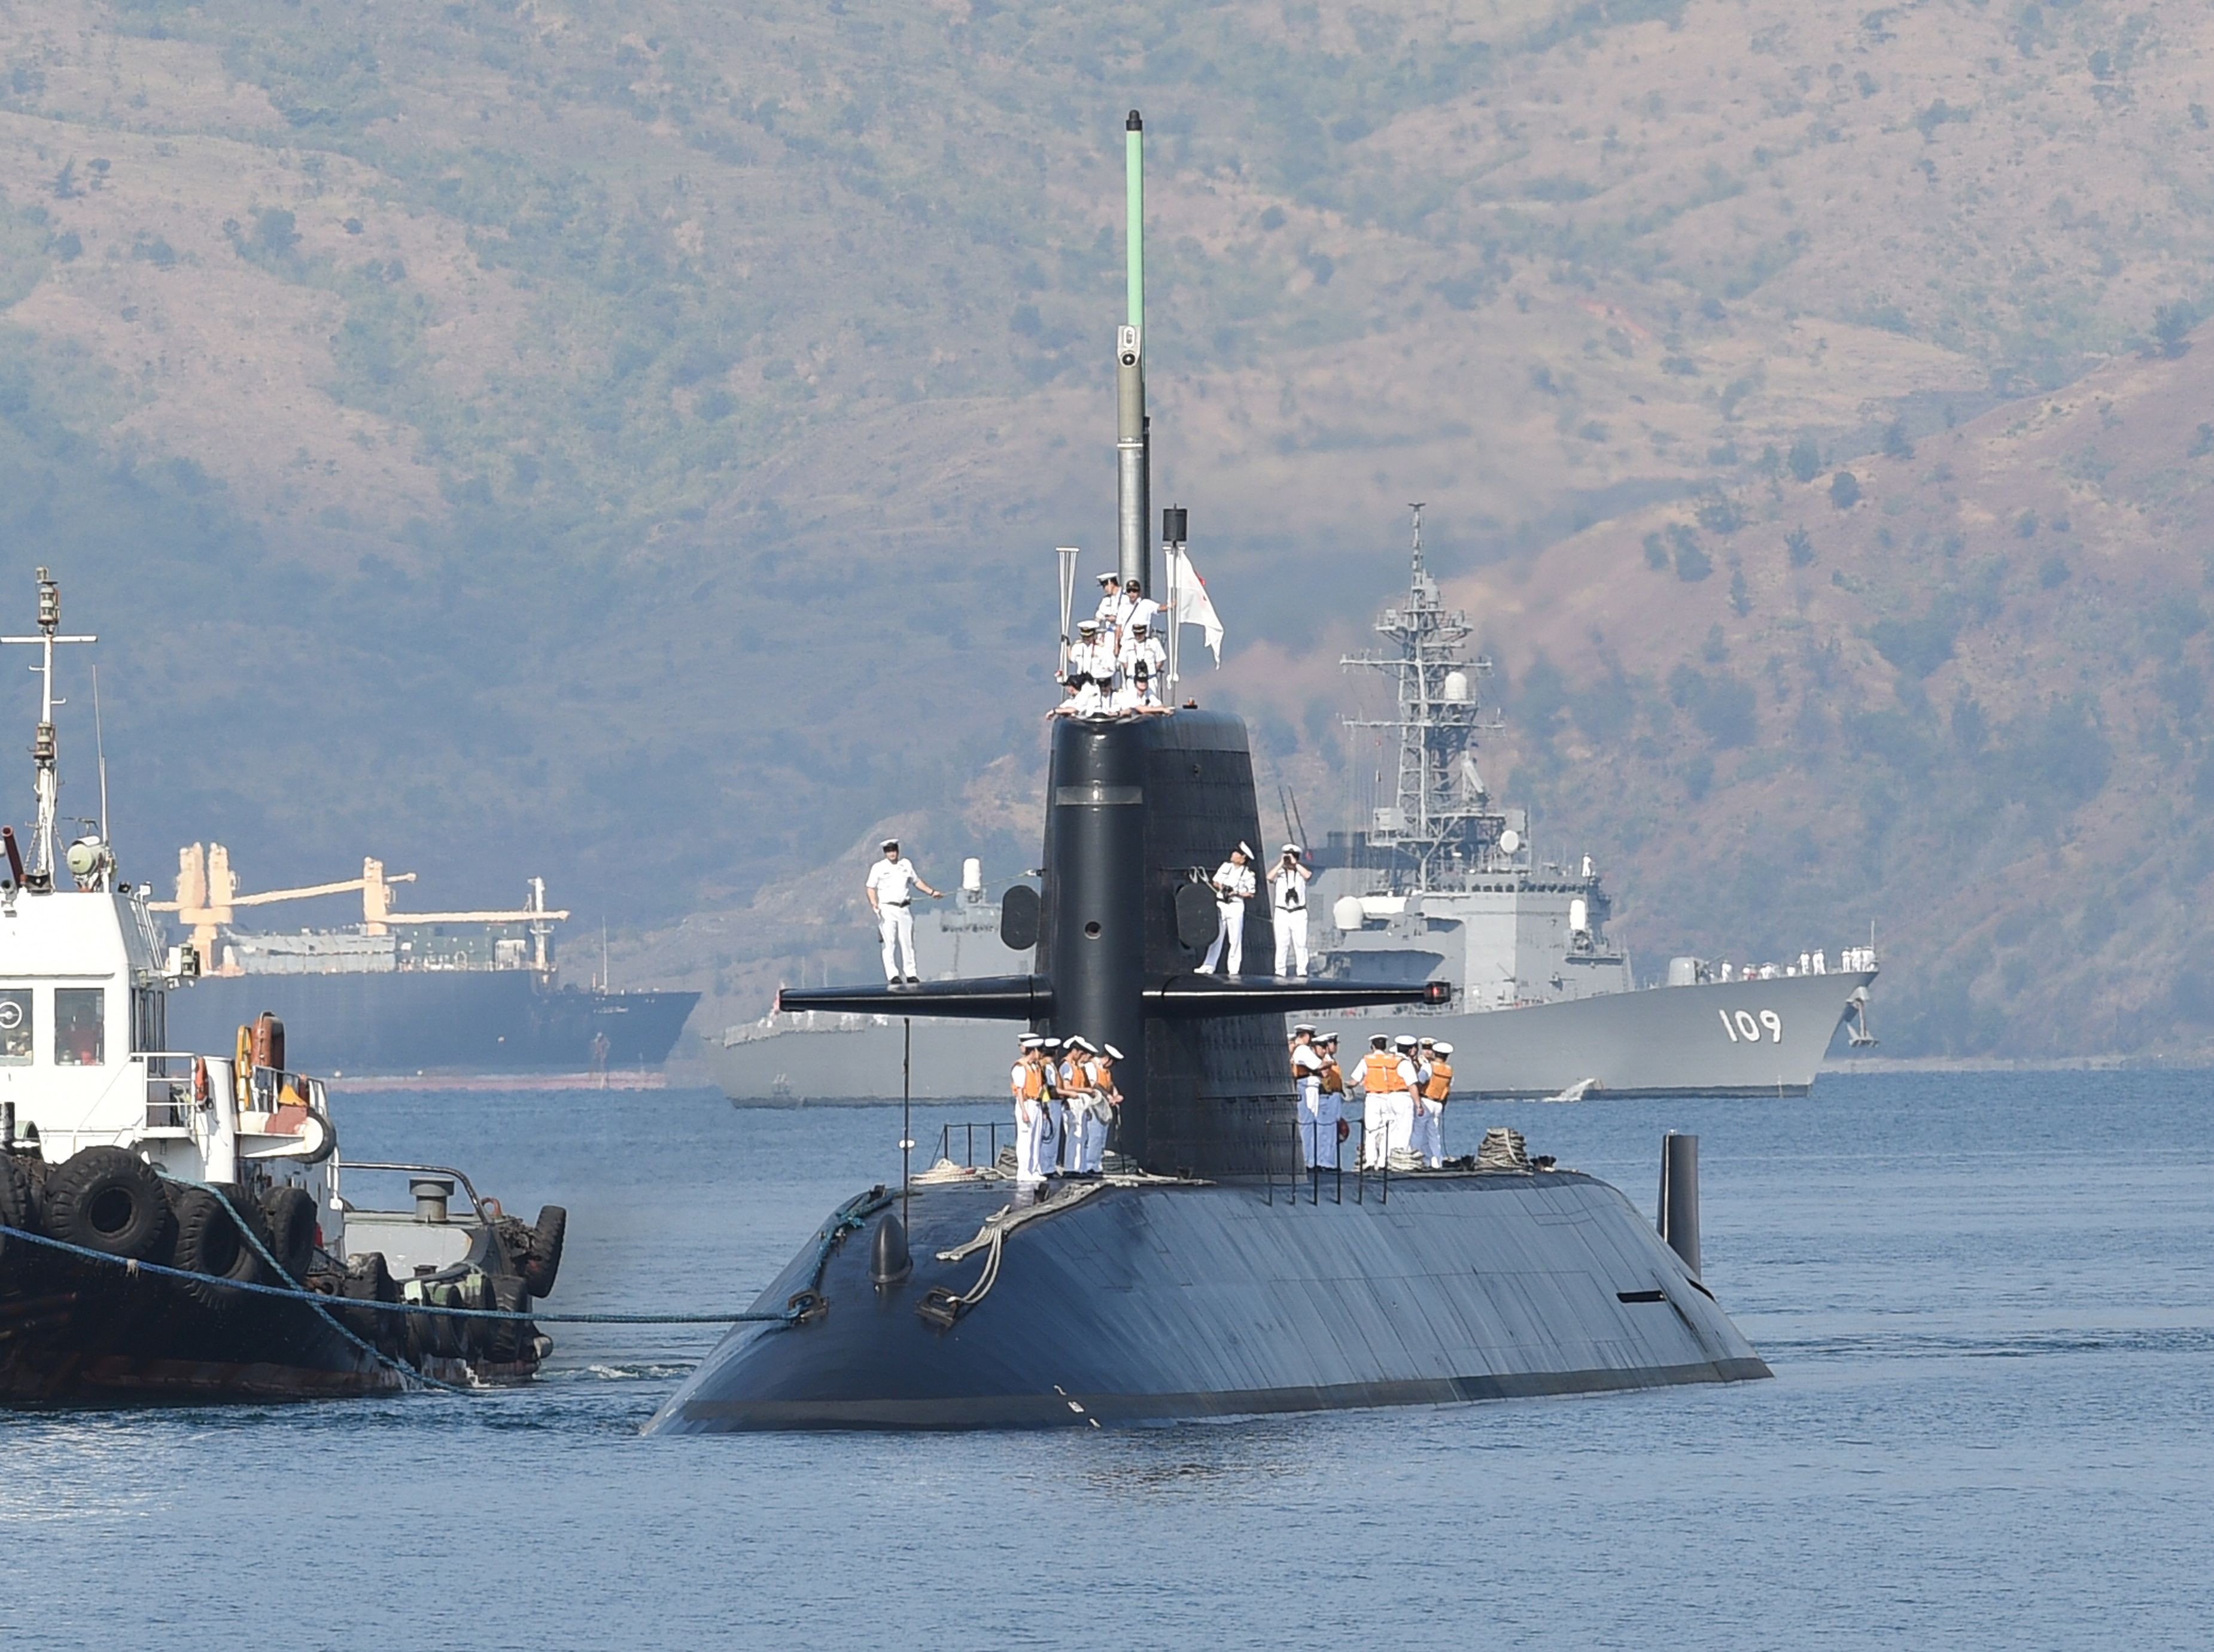 The Maritime Self-Defense Force training submarine Oyashio, escorted by the destroyer Ariake (background), one of two vessels that accompanied the sub, arrives at Subic Bay in the Philippines on Sunday. | AFP-JIJI